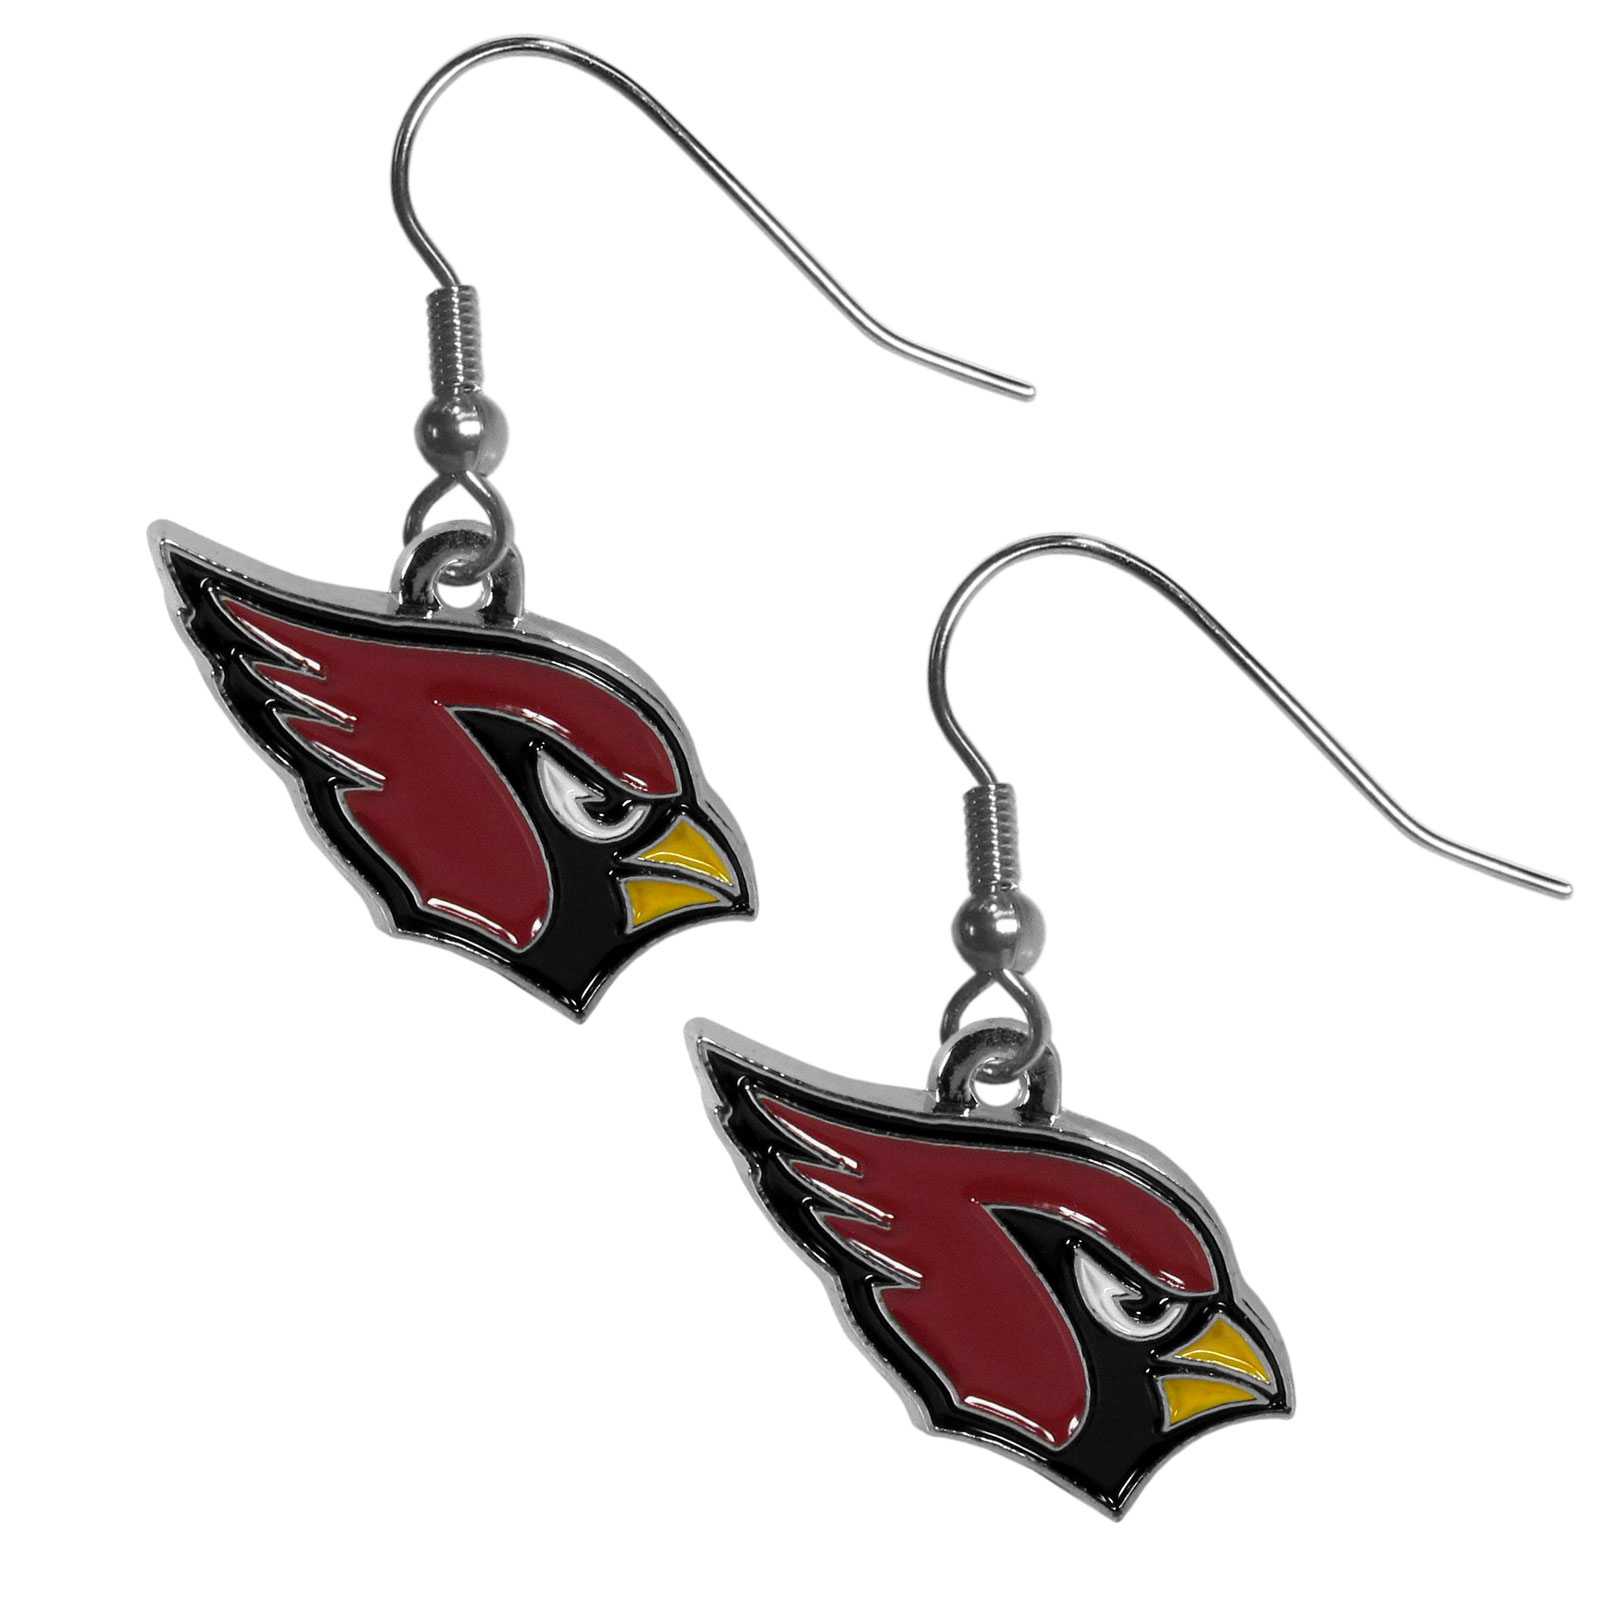 Arizona Cardinals Chrome Dangle Earrings - Officially licensed NFL Arizona Cardinals dangle earrings have fully cast Arizona Cardinals charms with exceptional detail and a hand enameled finish. The Arizona Cardinals earrings have a high polish nickel free chrome finish and hypoallergenic fishhook posts. Officially licensed NFL product Licensee: Siskiyou Buckle .com